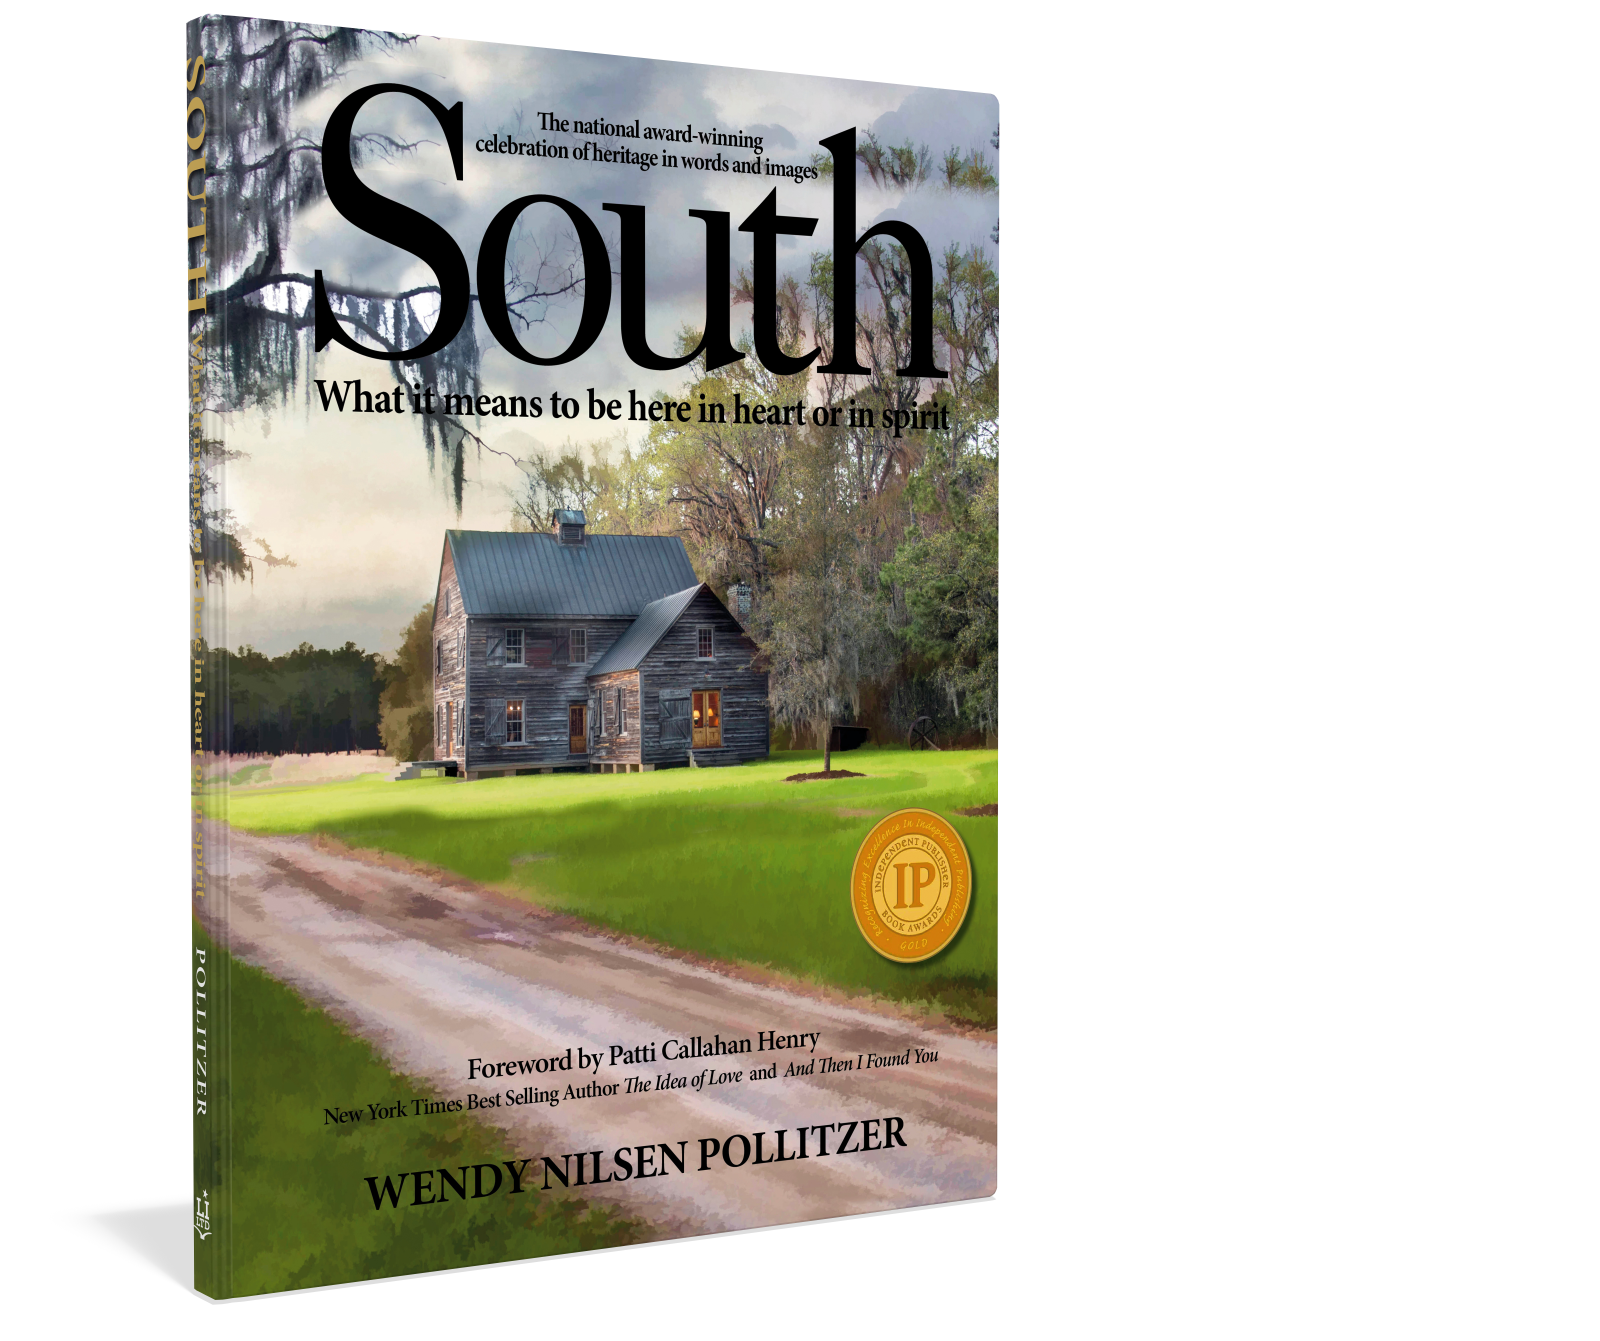 South, What it means to be here in heart or in spirit. Lowcountry book. Wendy Nilsen Pollitzer and Starbooks.